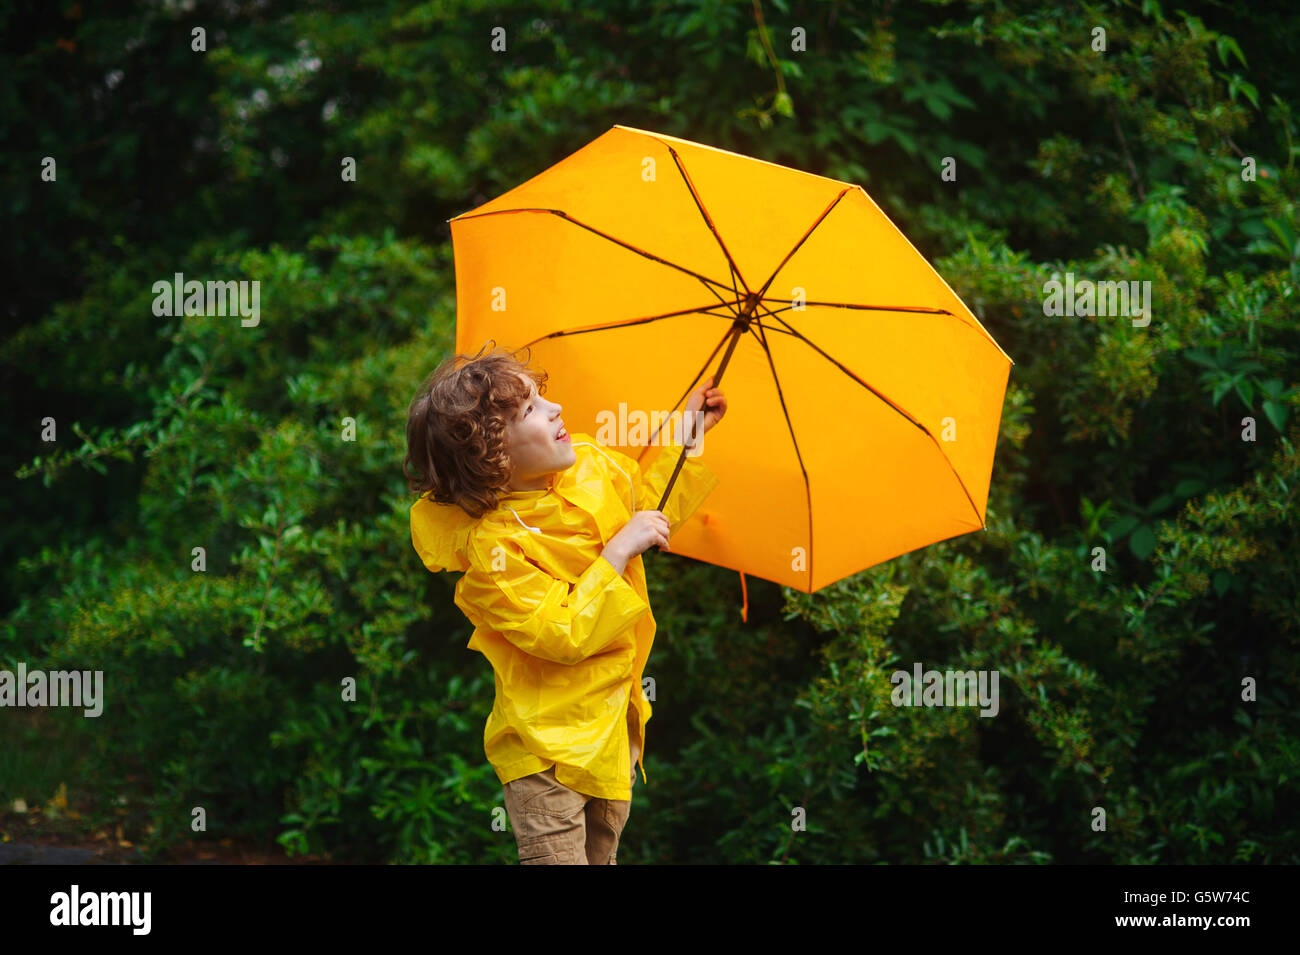 Boy of 8-9 years with a yellow umbrella. Cute chappie dressed in a yellow raincoat. The rain has ended and the boy - Stock Image